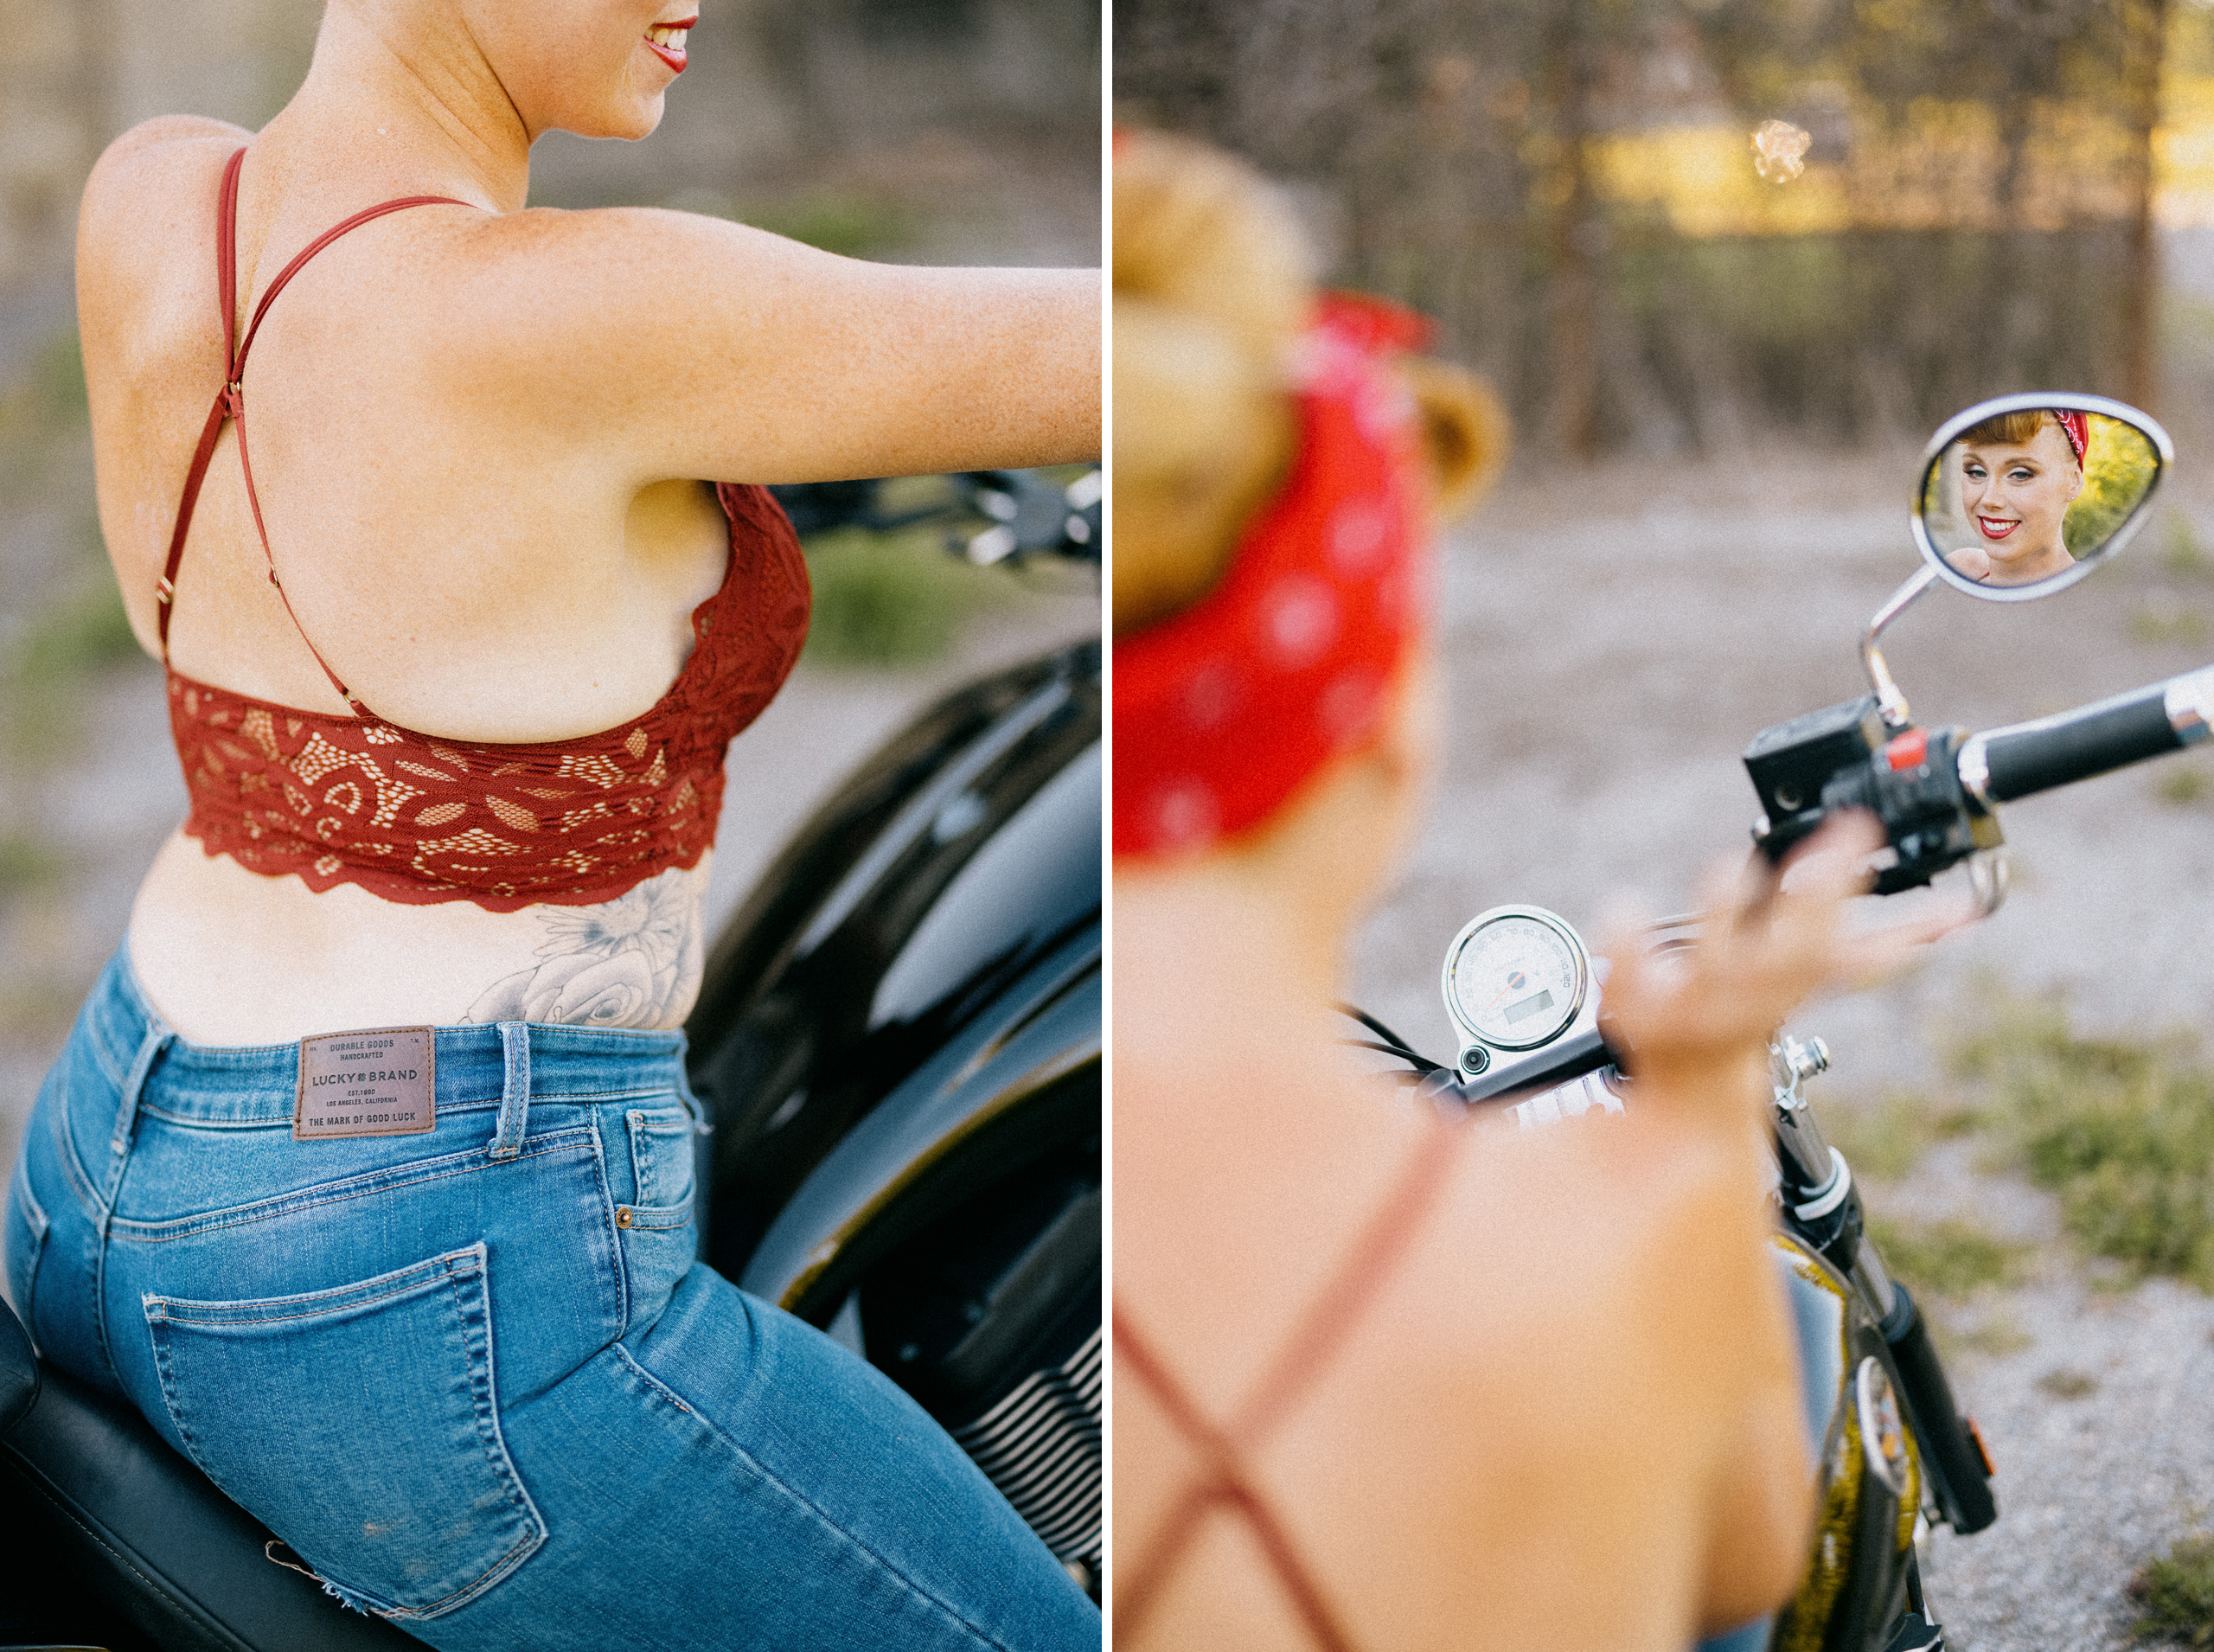 lucky brand jeans hot boudoir outdoor motorycle